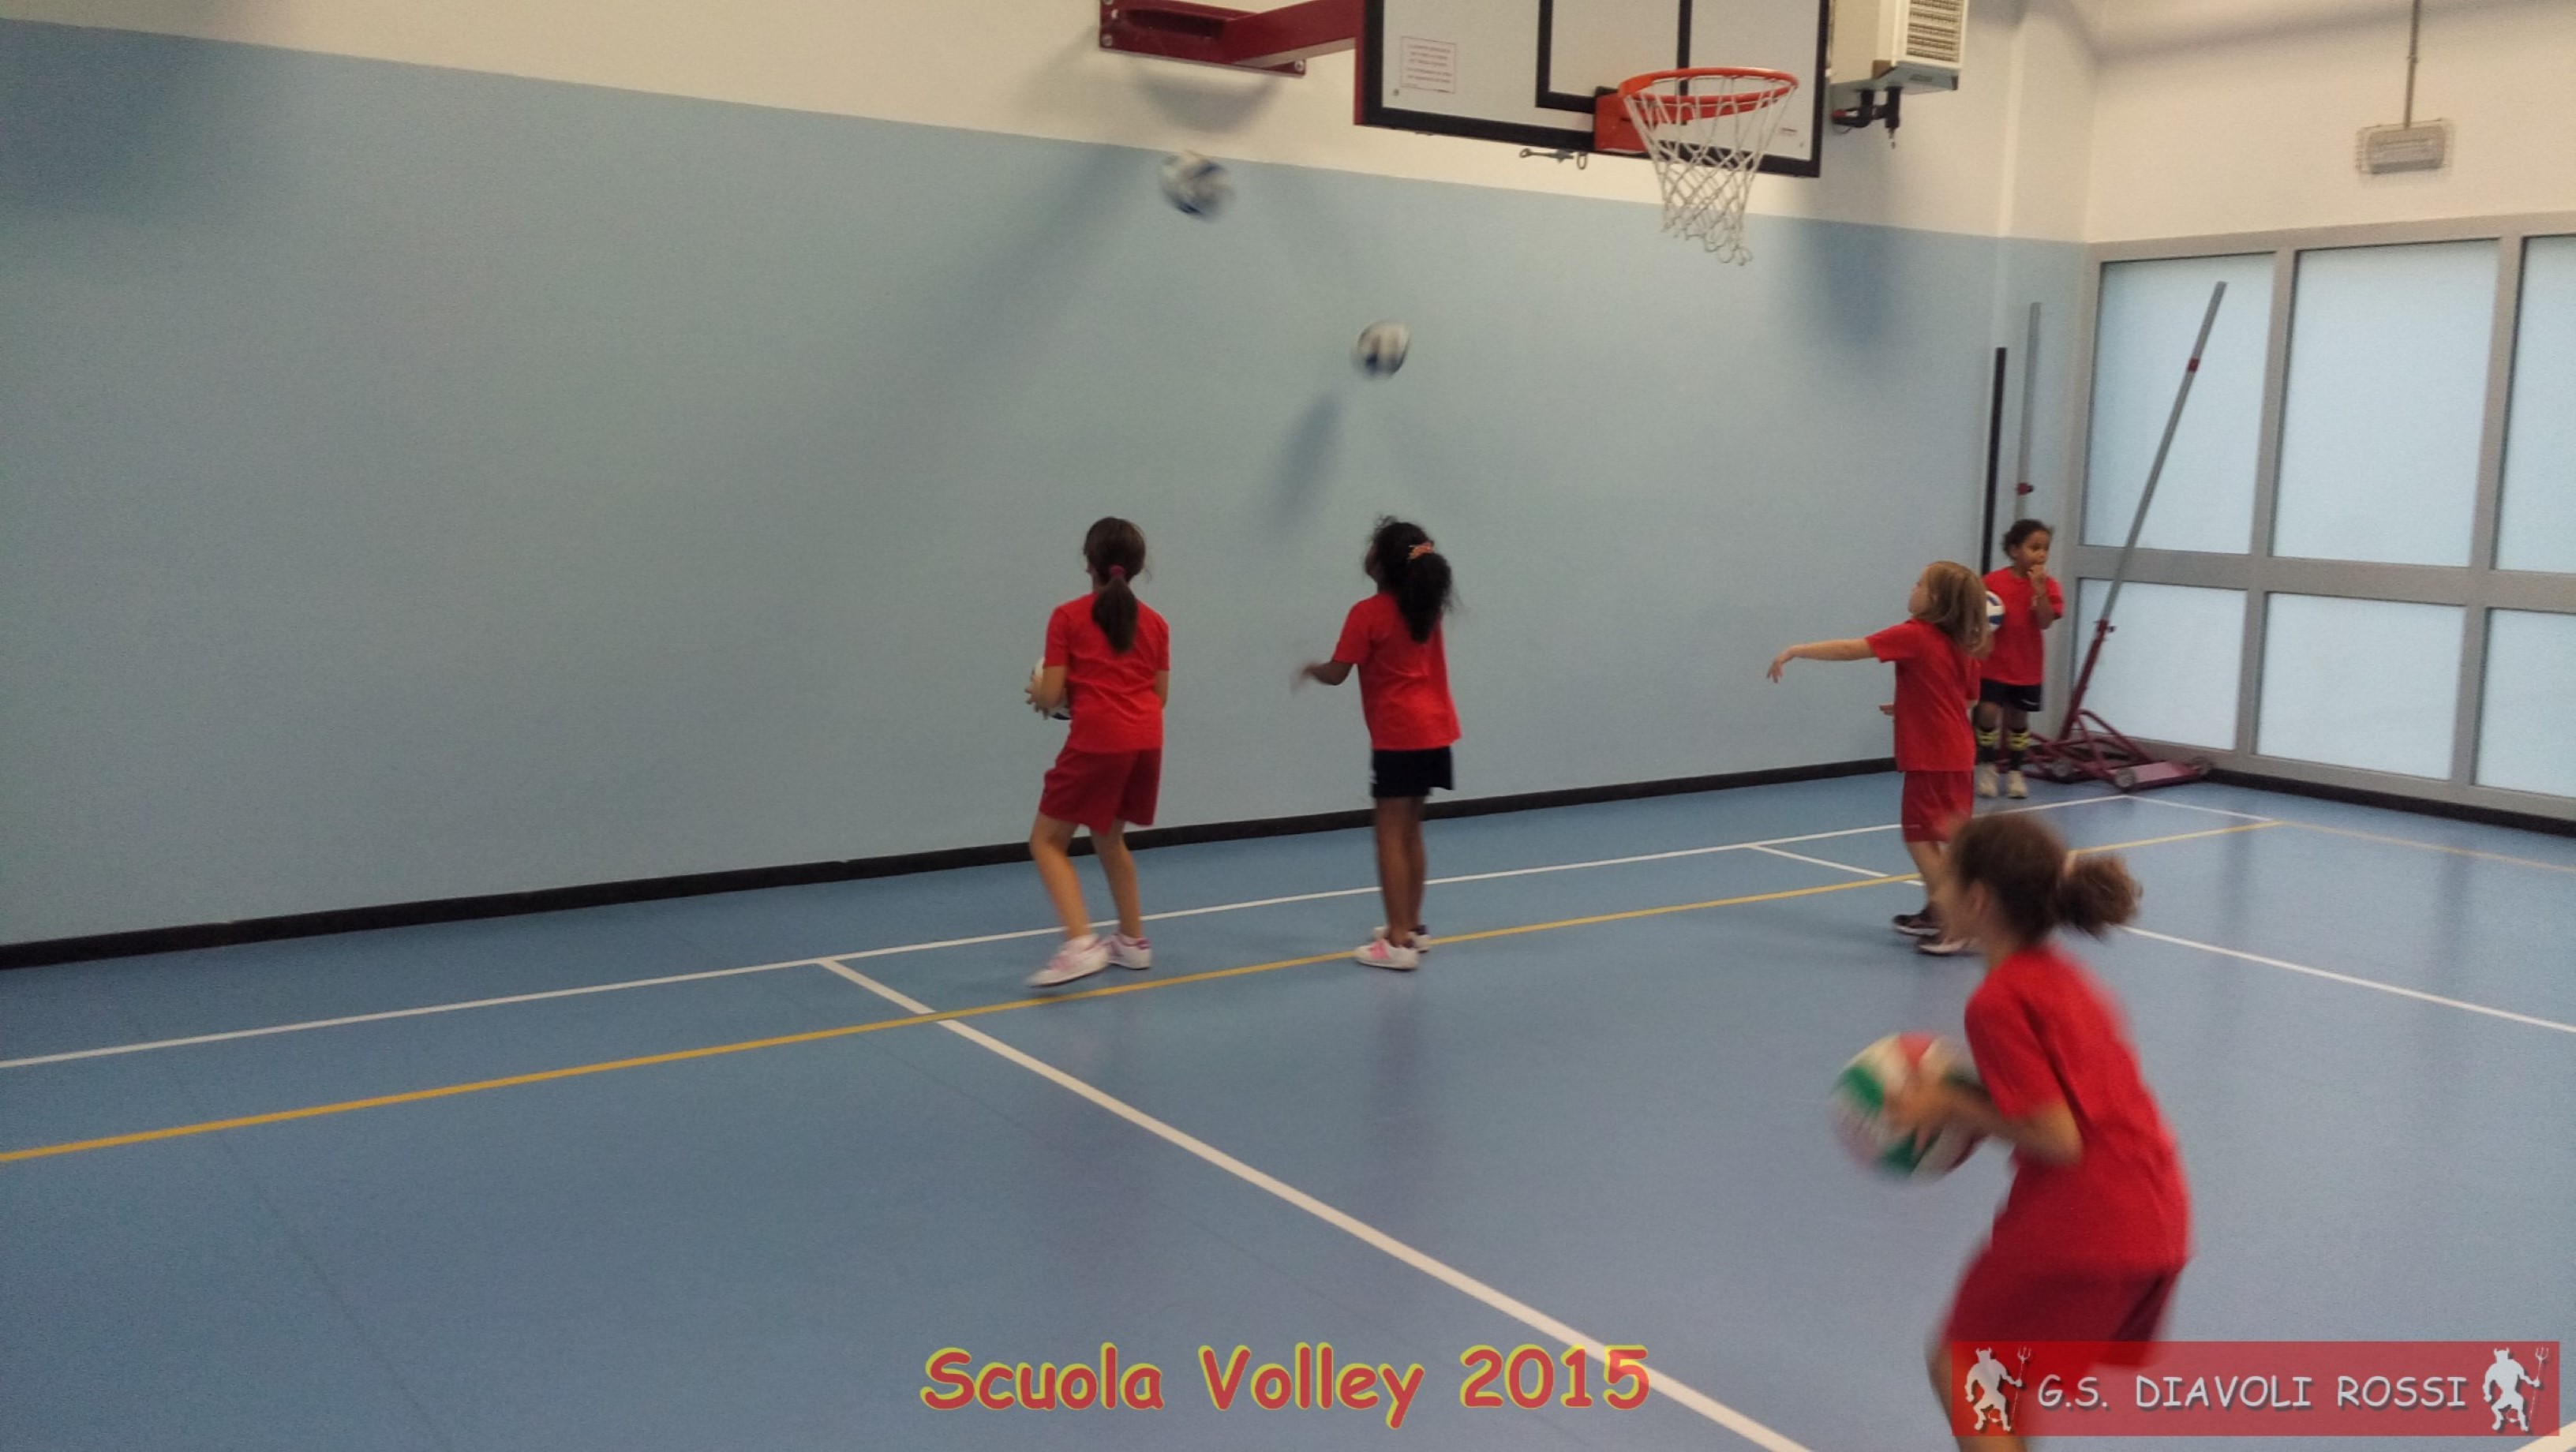 Scuola Volley-all 1